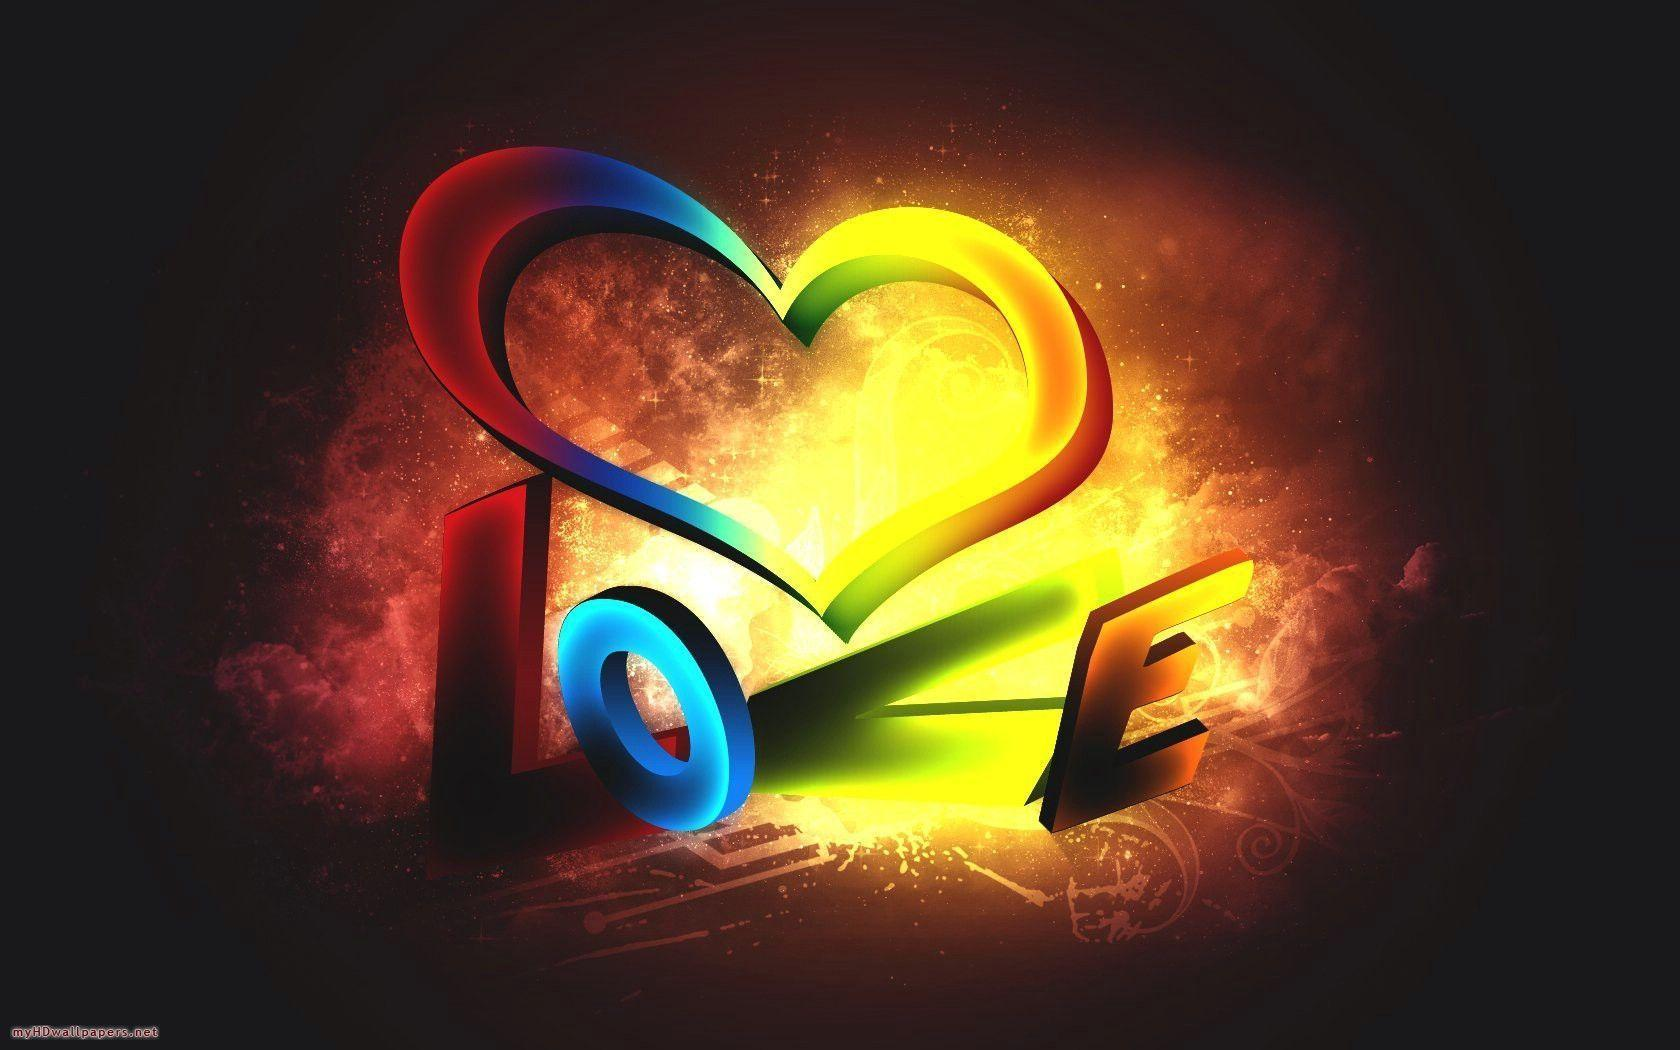 Wallpaper download android - 3d Love Wallpapers Zem Wallpaper Is The Best Place Where You Get